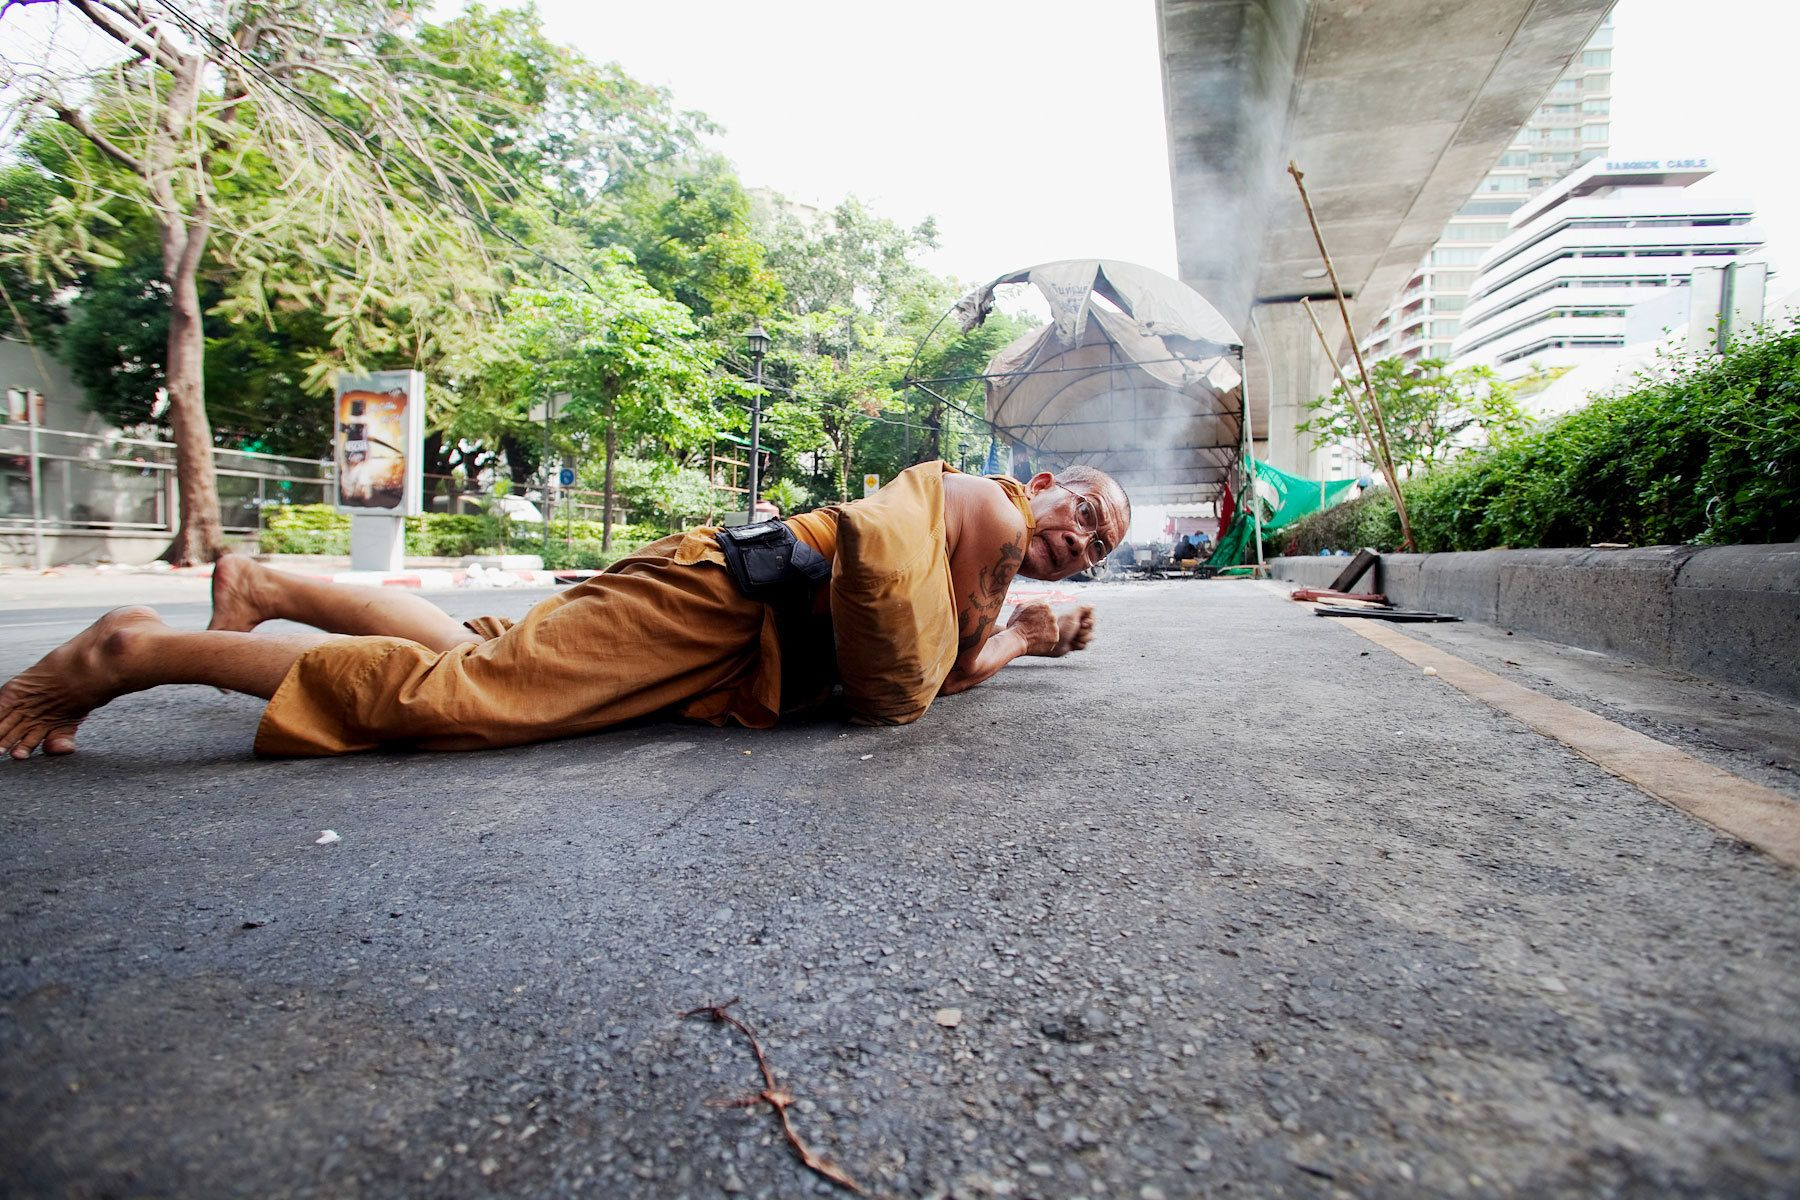 A monk supporter of The United Front for Democracy AgainstDictatorship (UDD) takes cover from heavy gunfire during the military crackdown against UDD demonstrators.